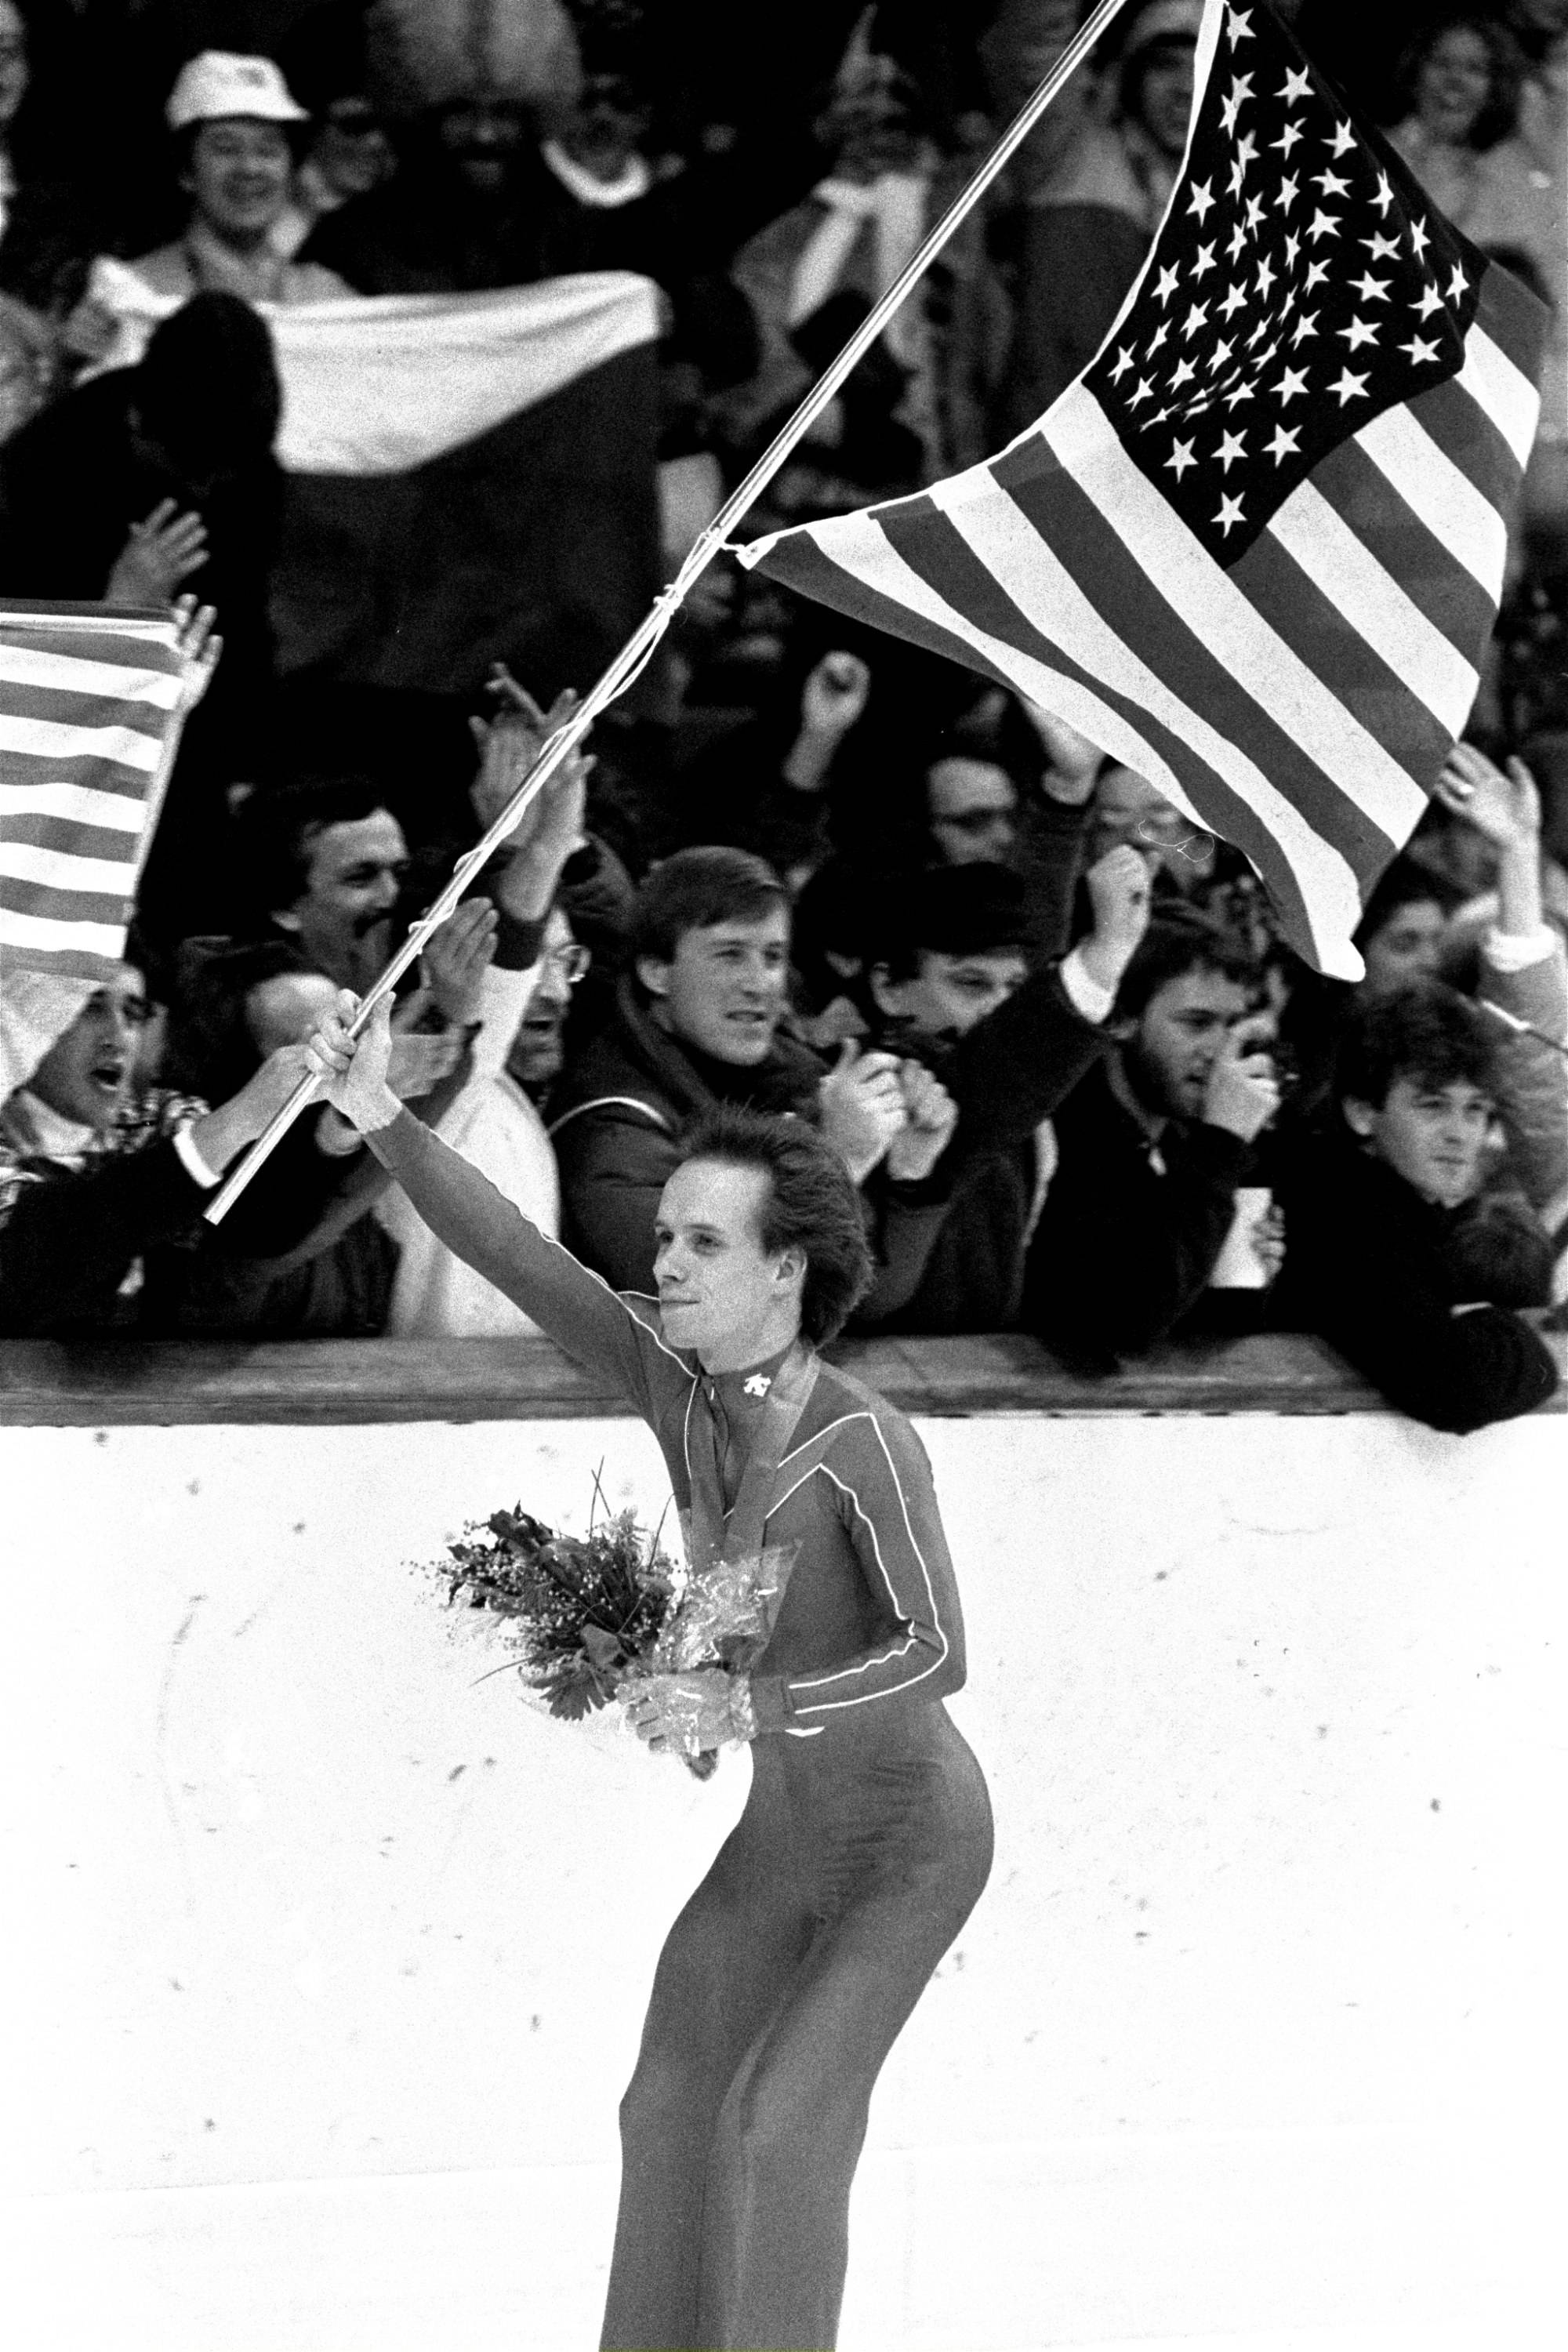 Figure skater Scott Hamilton of the United States carries an American flag past a cheering crowd after he was awarded a gold medal in figure skating at the 1984 Winter Games at Zetra's ice rink in Sarajevo.